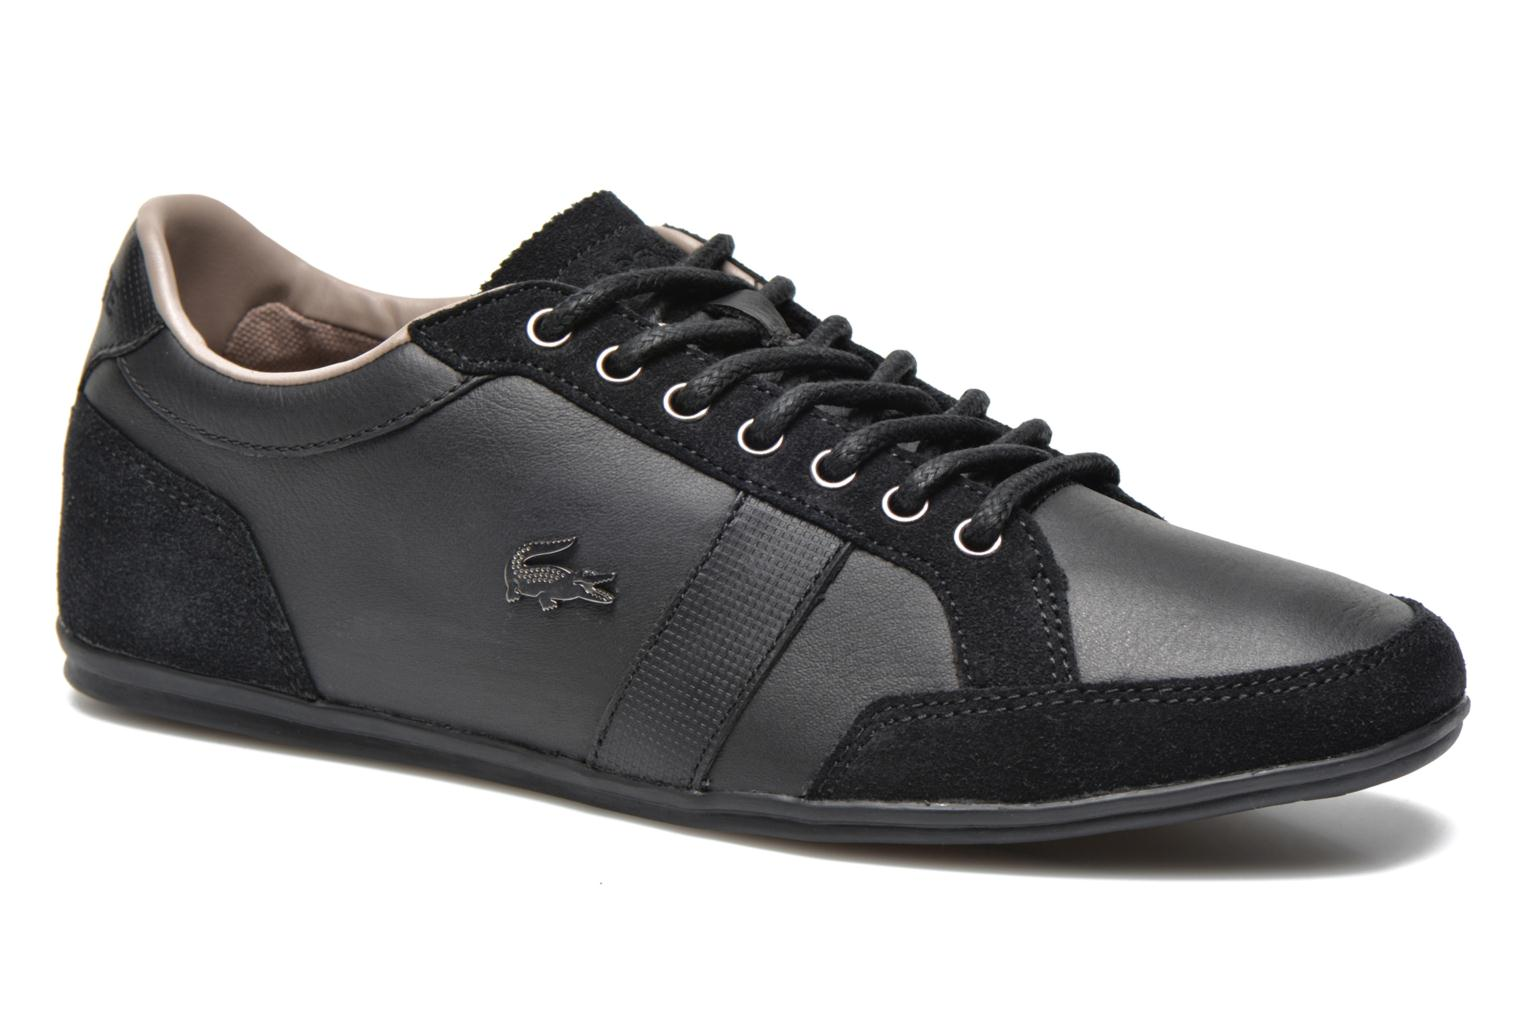 Sneakers Alisos 23 by Lacoste